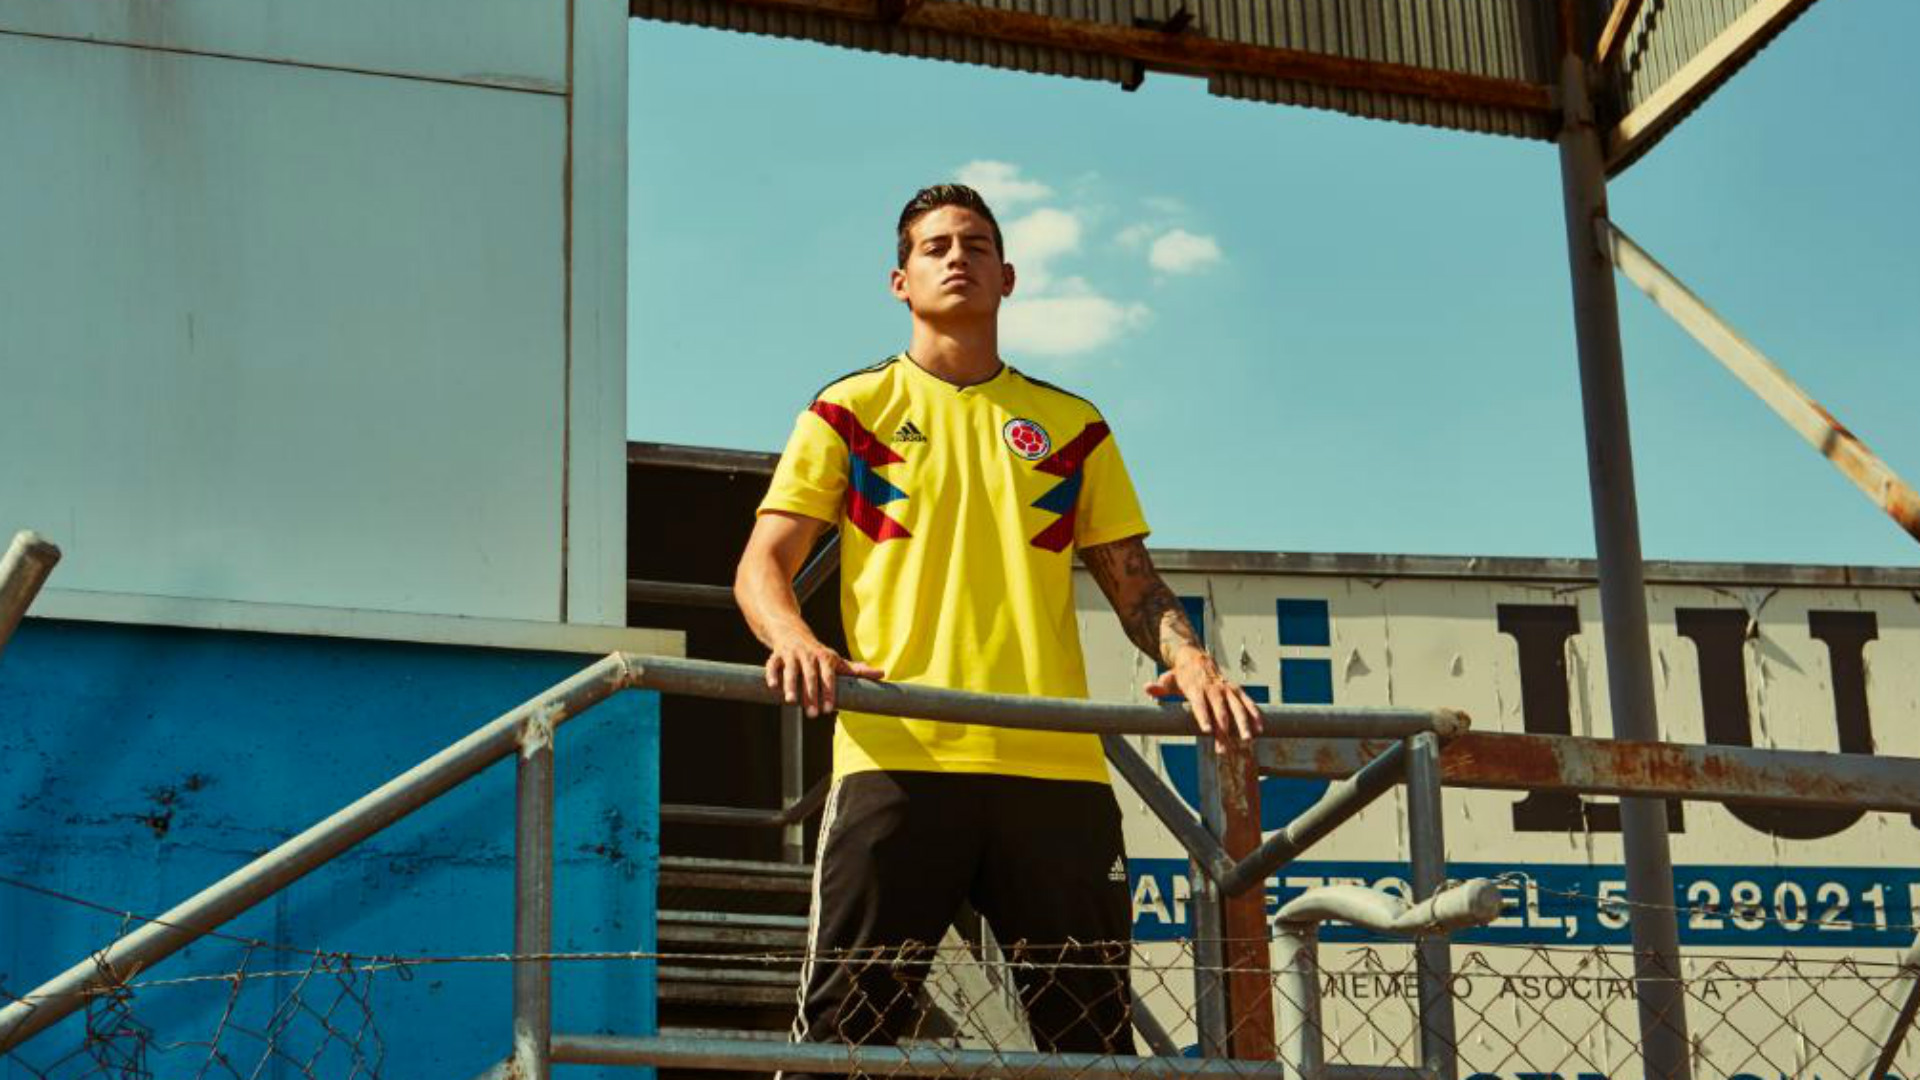 Cool Final World Cup 2018 - world-cup-2018-kit-colombia-home_e6rxd6864gwo16umzg5mkpaq0  Collection_864899 .jpg?t\u003d-1590397017